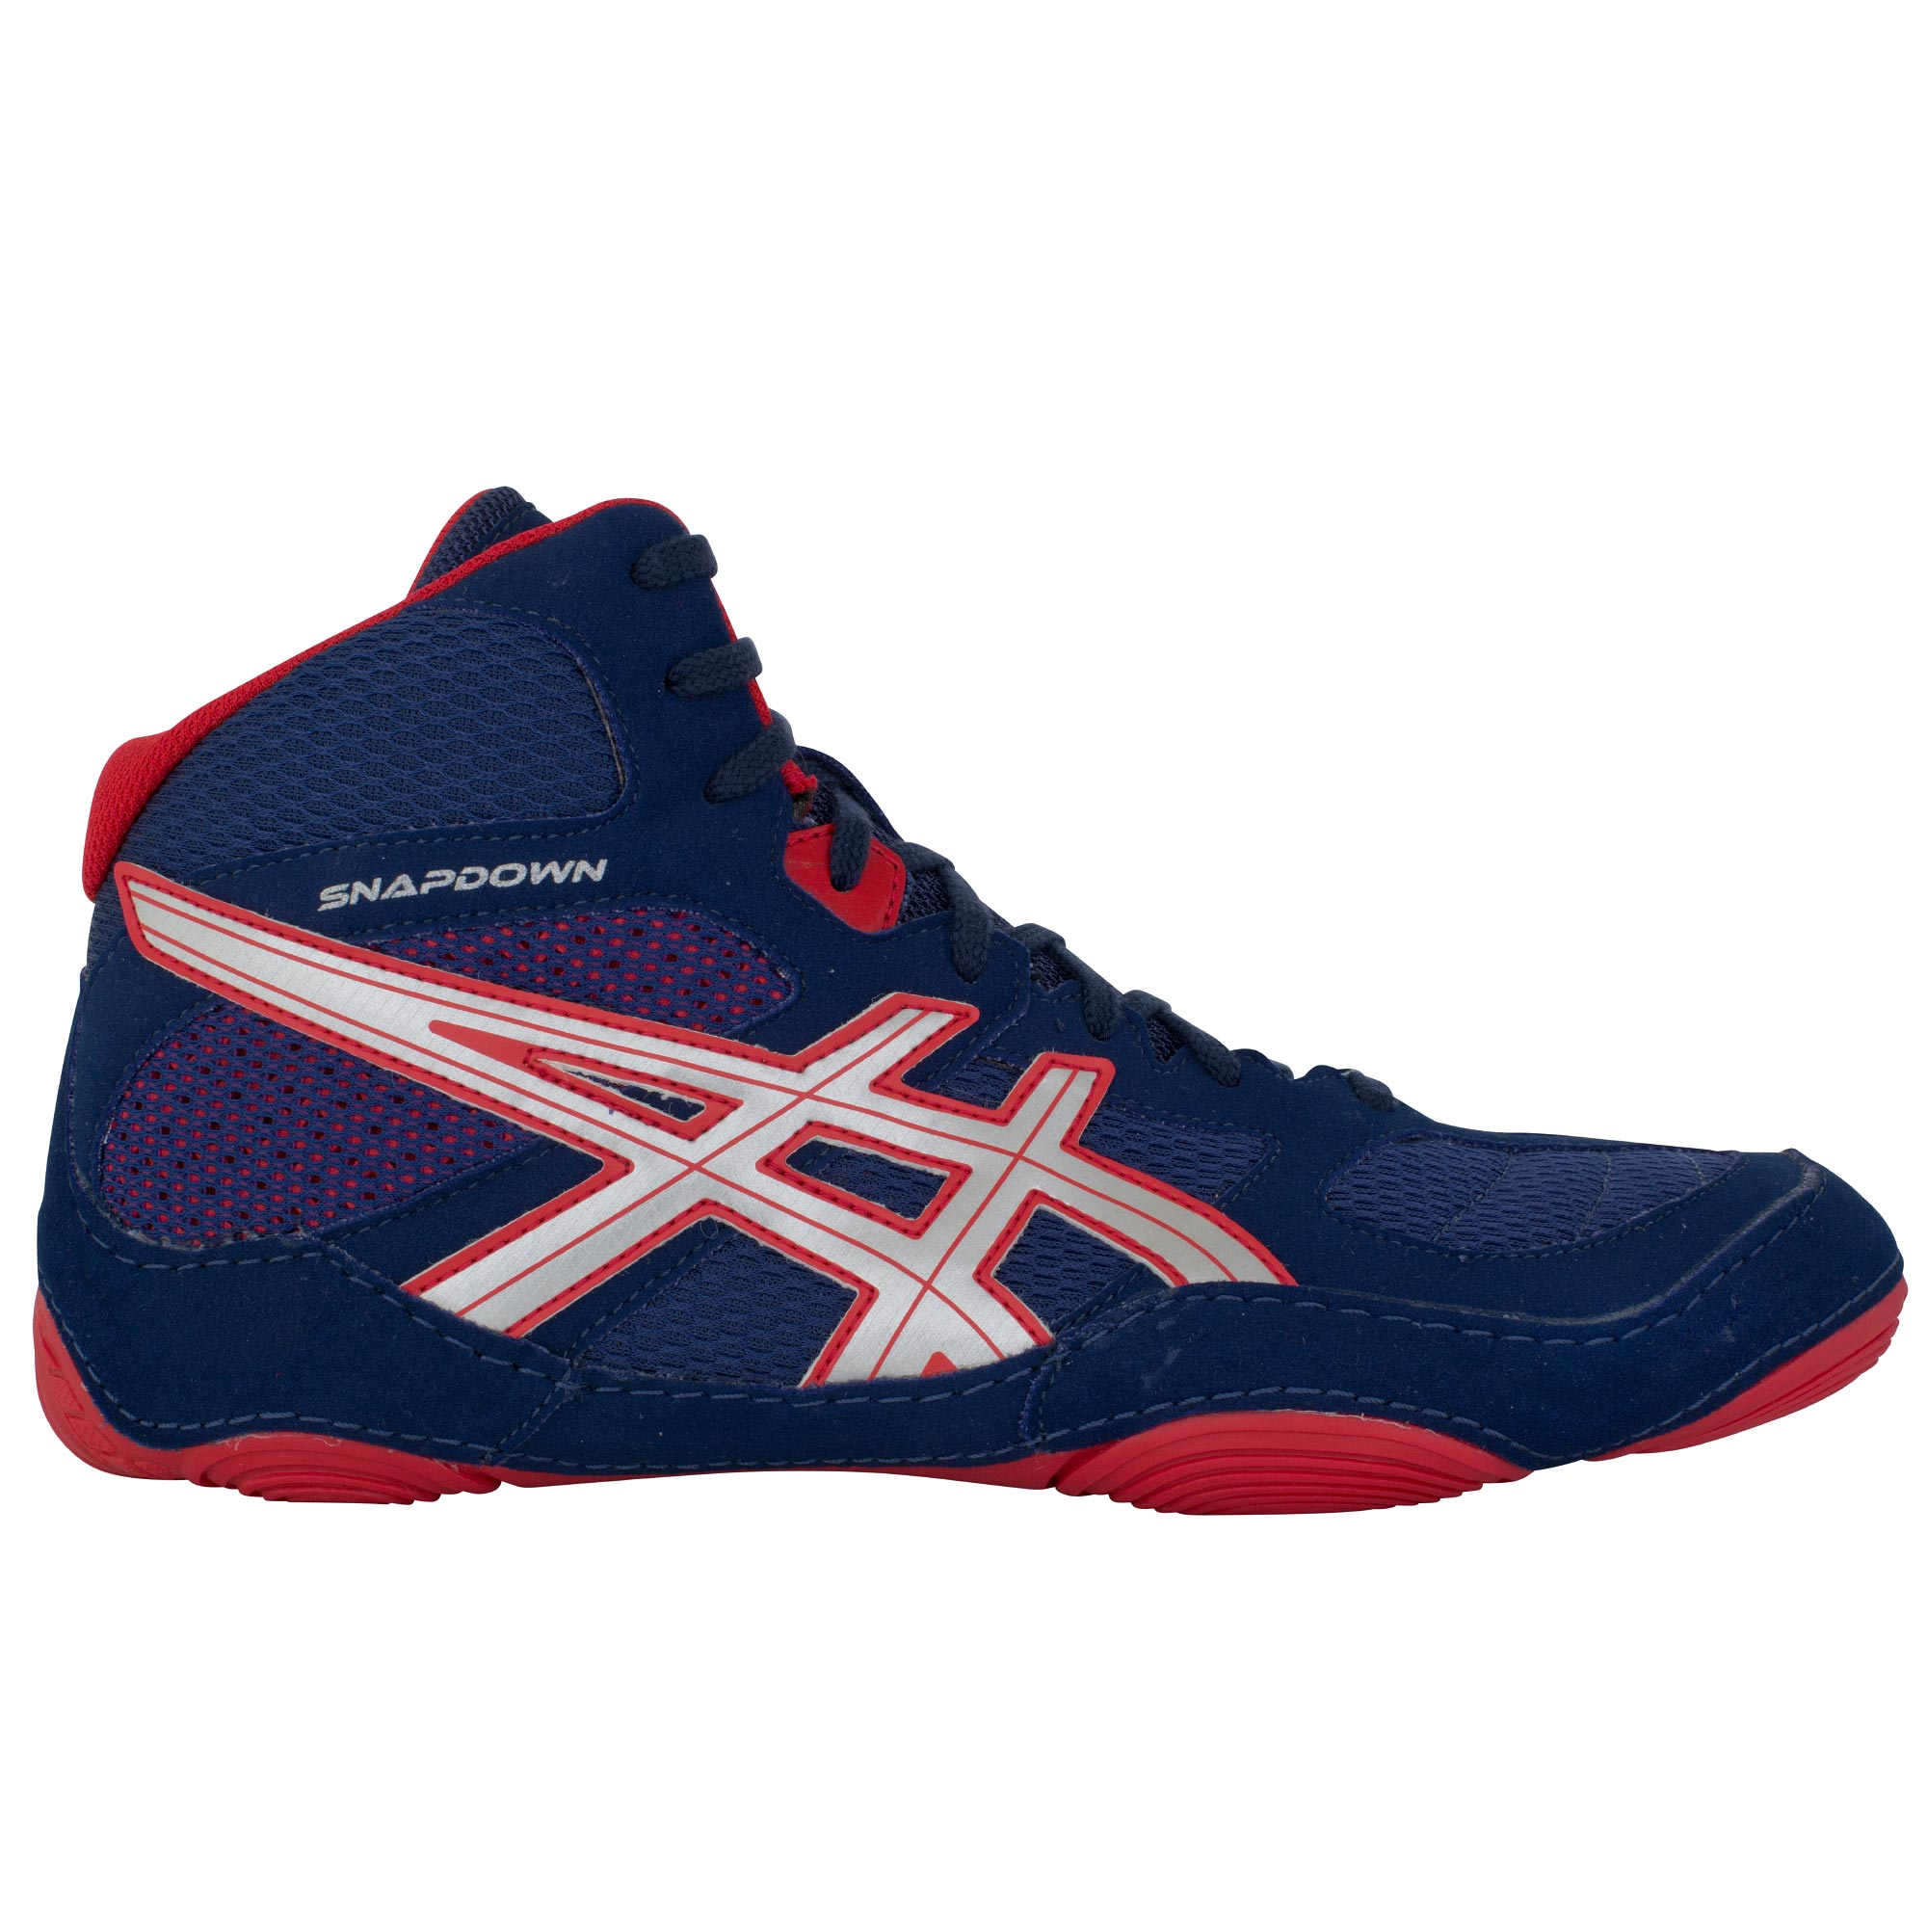 Asics Snapdown Shoes Wrestlingmart Free Shipping